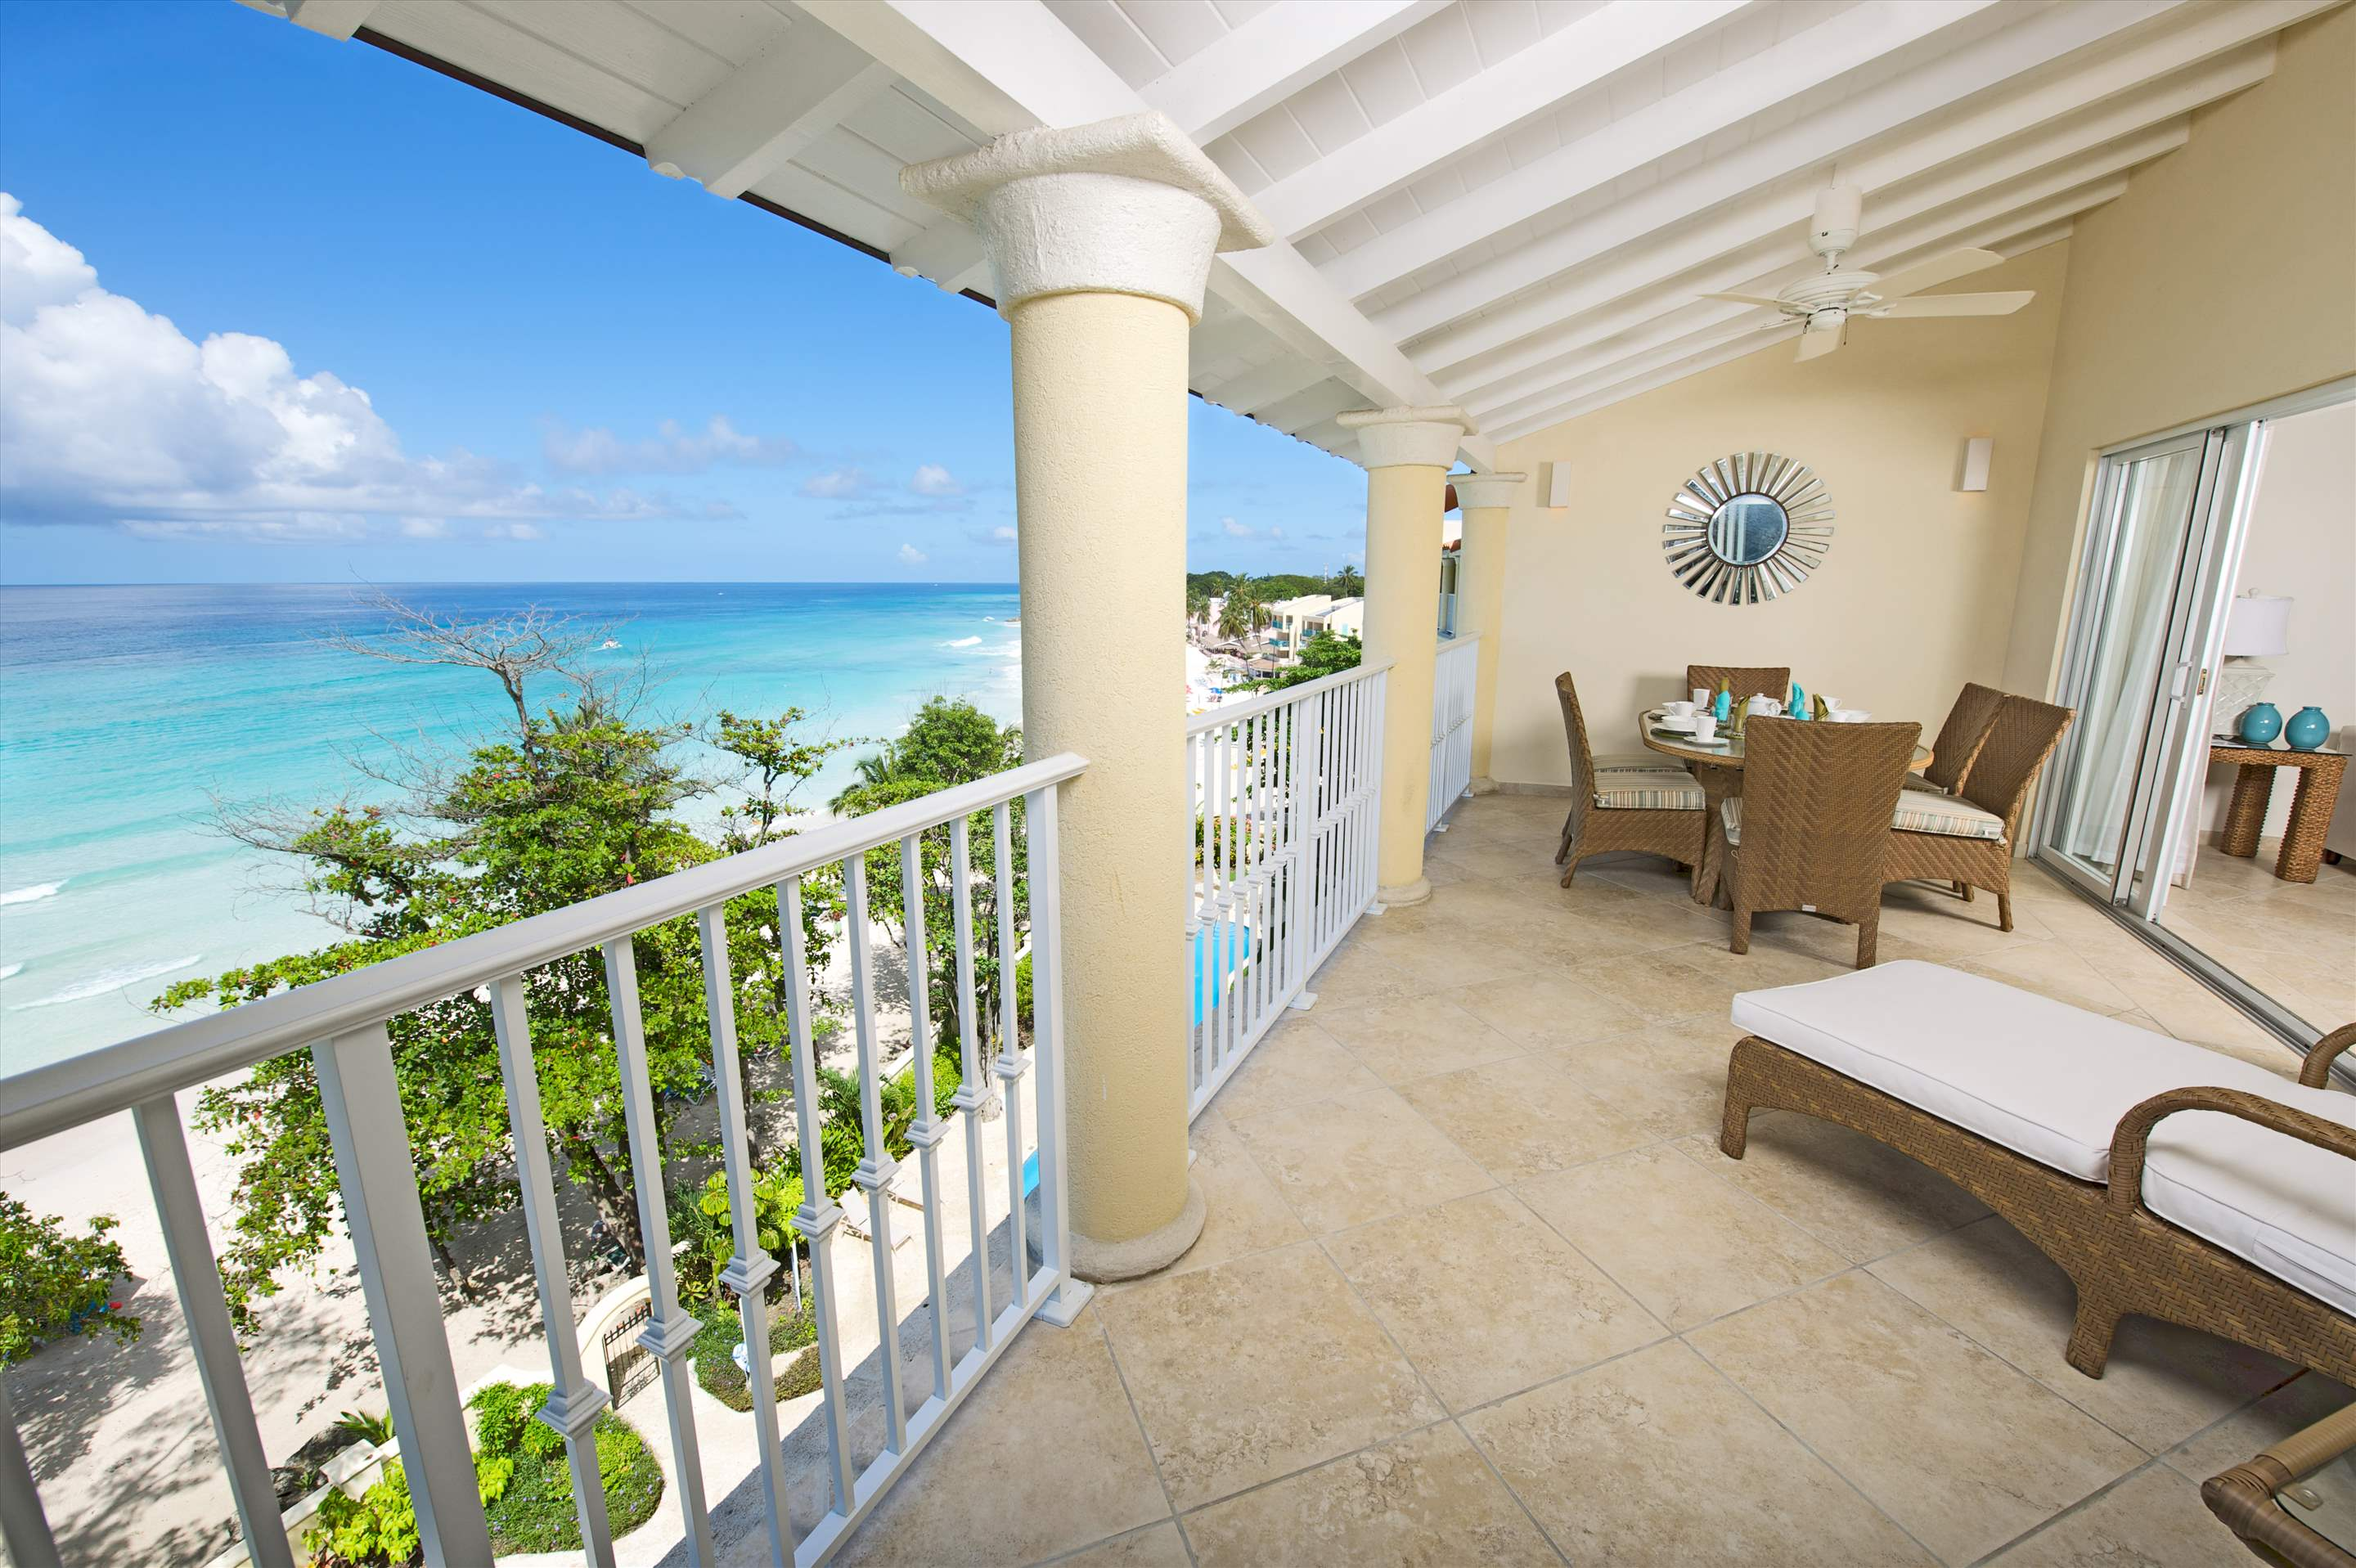 Sapphire Beach 509, 2 bedroom, 3 bedroom apartment in St. Lawrence Gap & South Coast, Barbados Photo #2